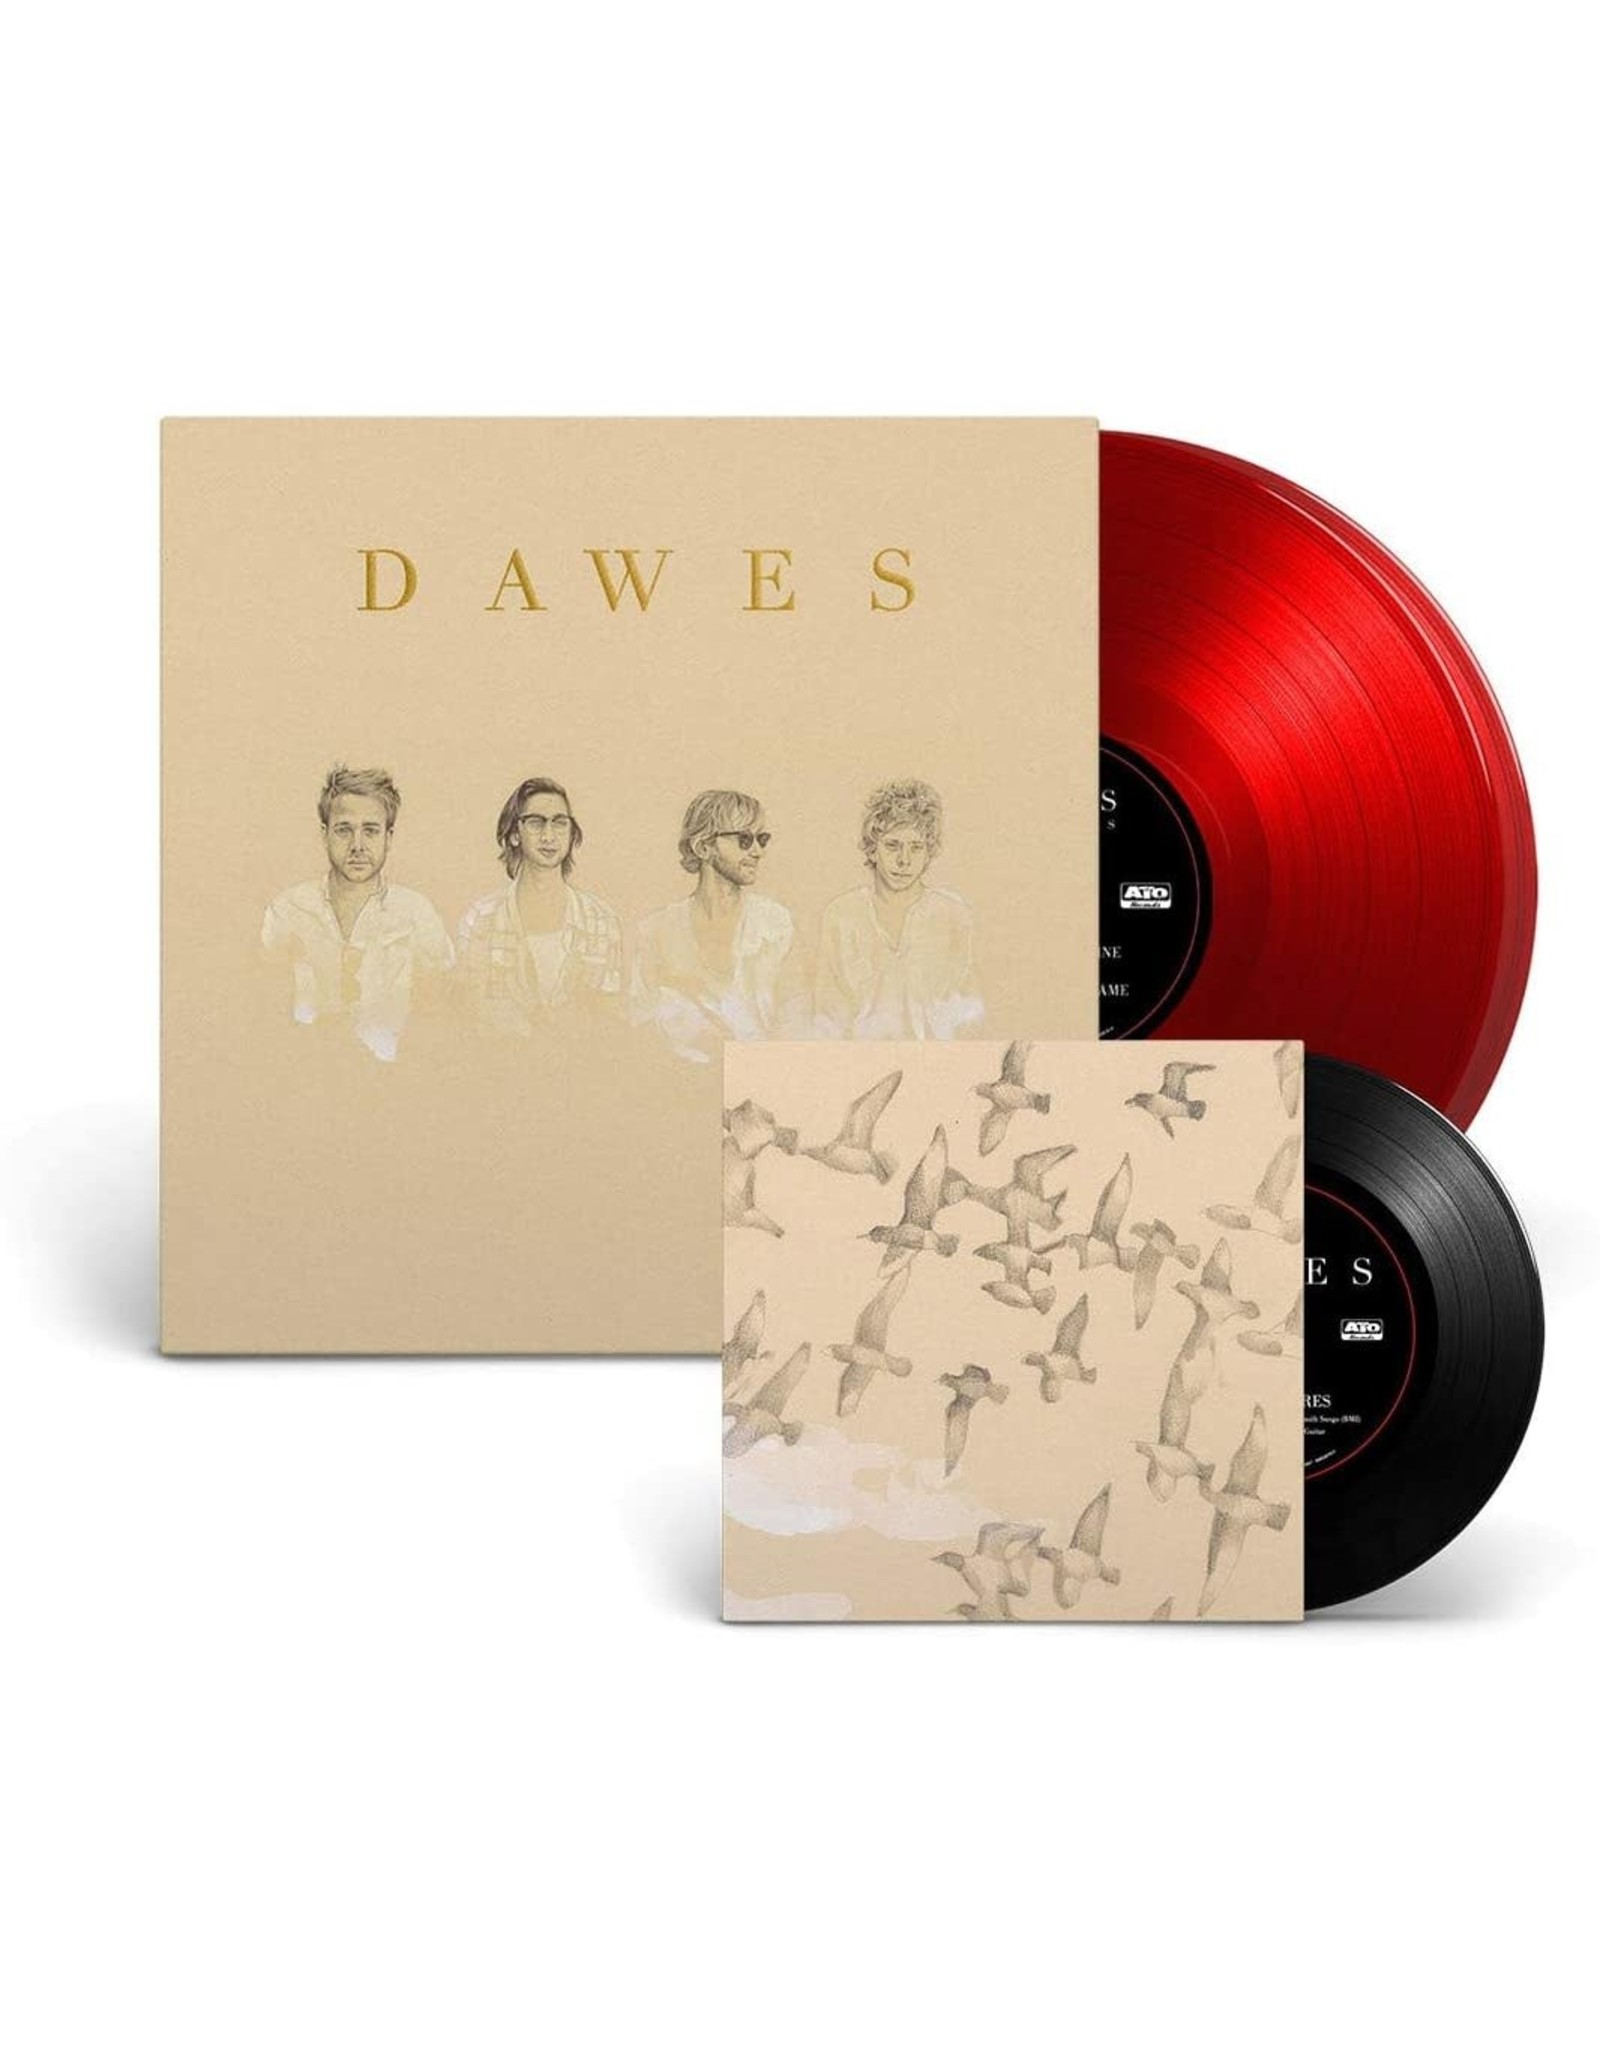 Dawes - North Hills (10th Anniversary Edition)